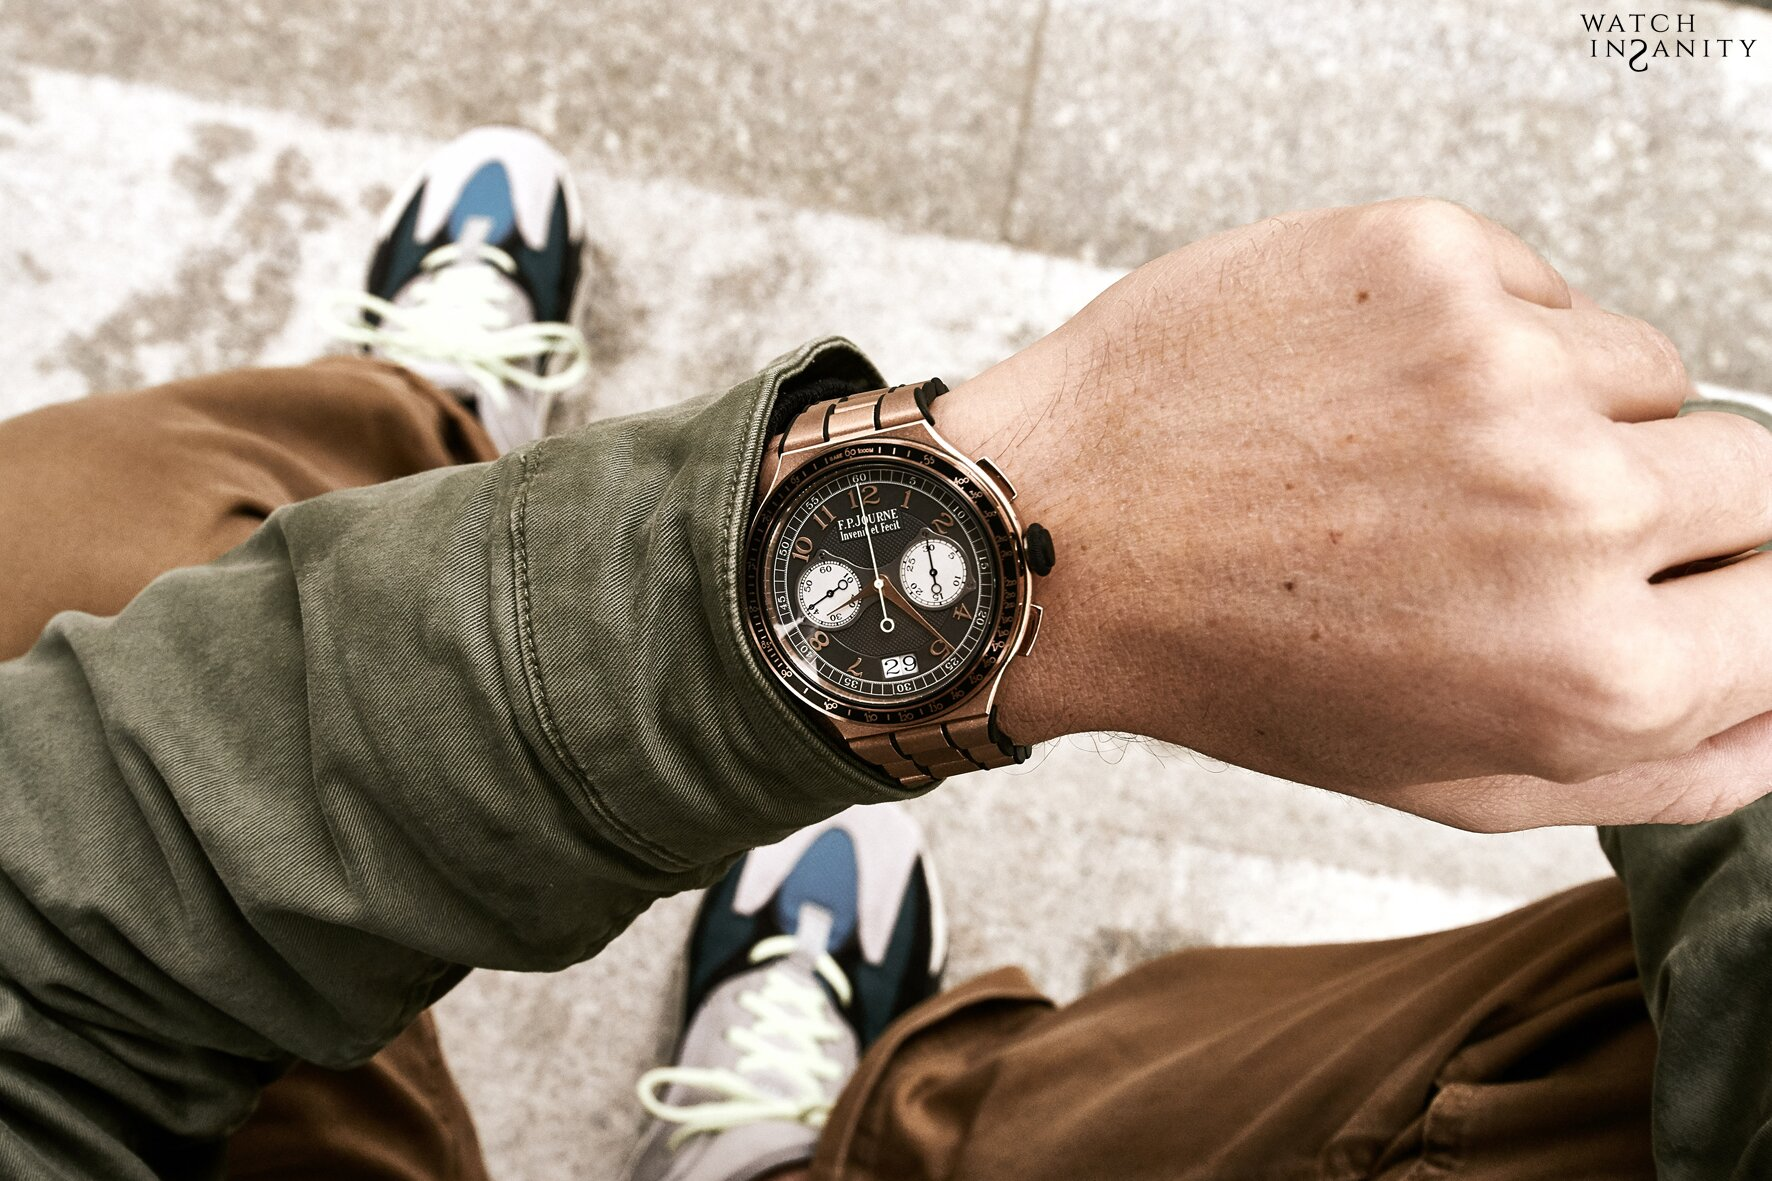 FP_Journe_Chronographe_Monopoussoir_Rattrapante_Gold_Watch_Insanity_04